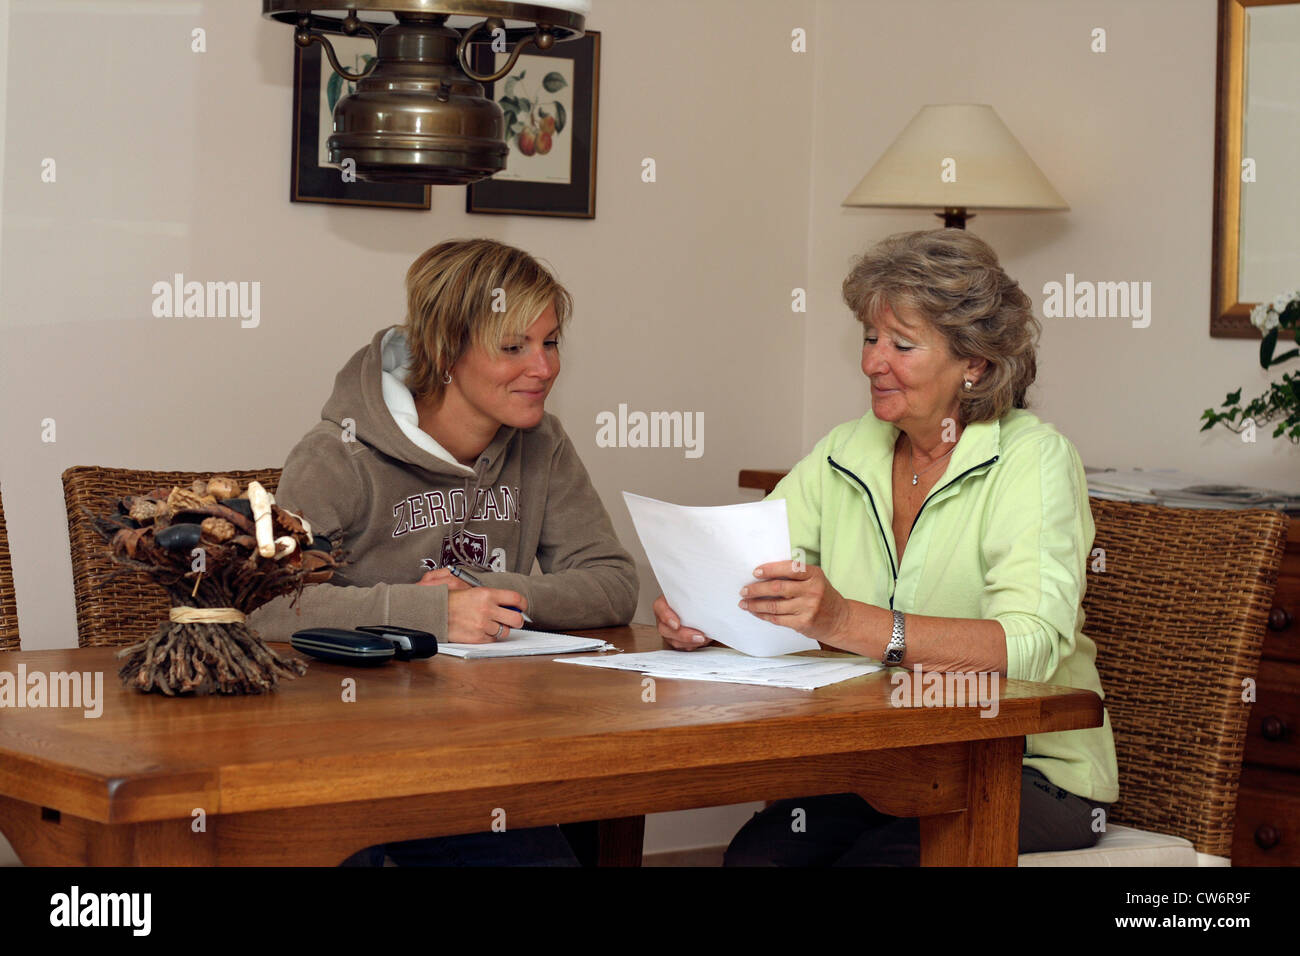 woman is talking with a dog breeder about buying a dog - Stock Image